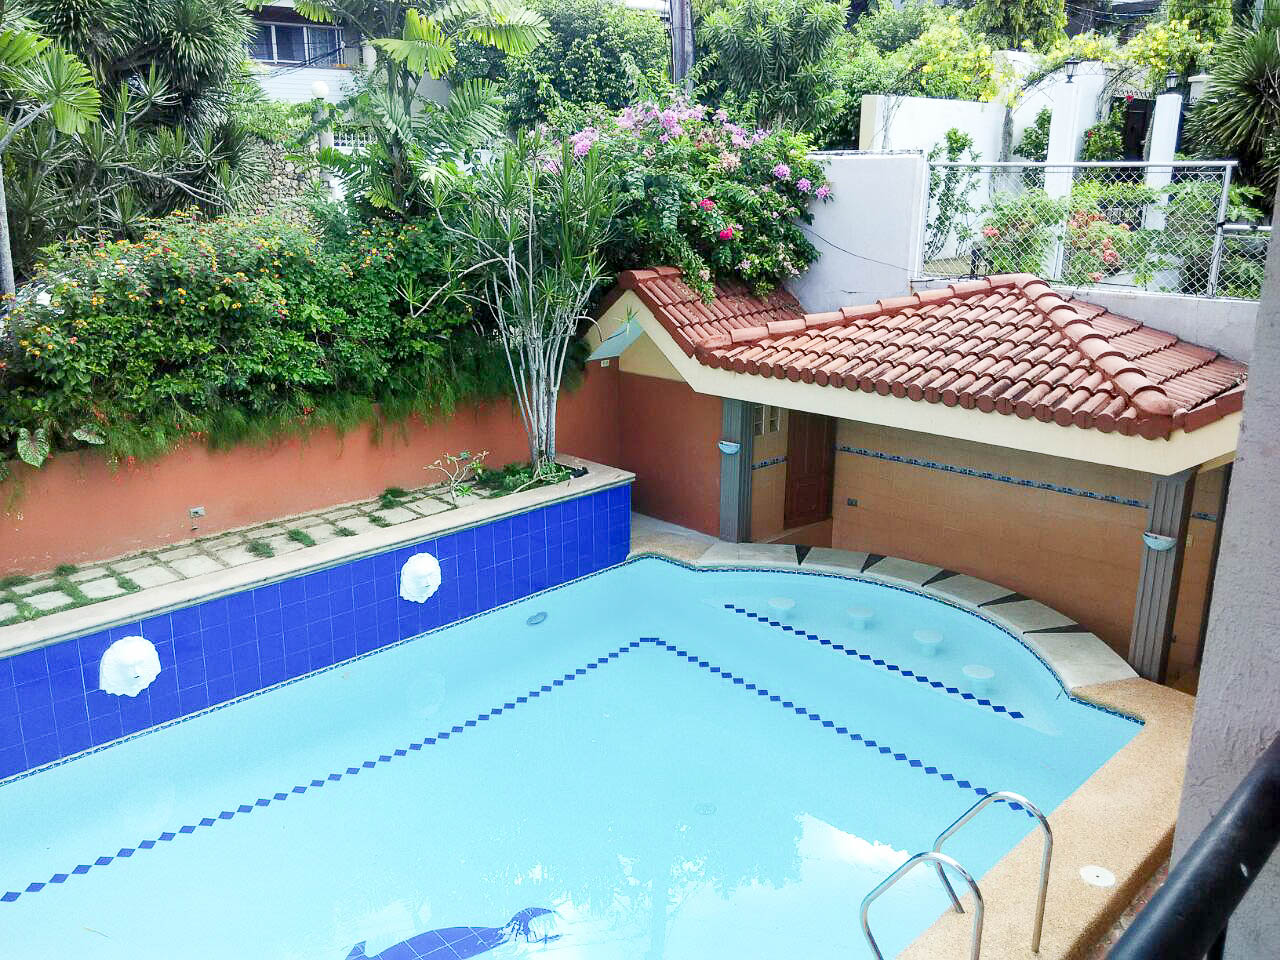 House with swimming pool for rent in cebu cebu grand realty - Laredo civic center swimming pool ...